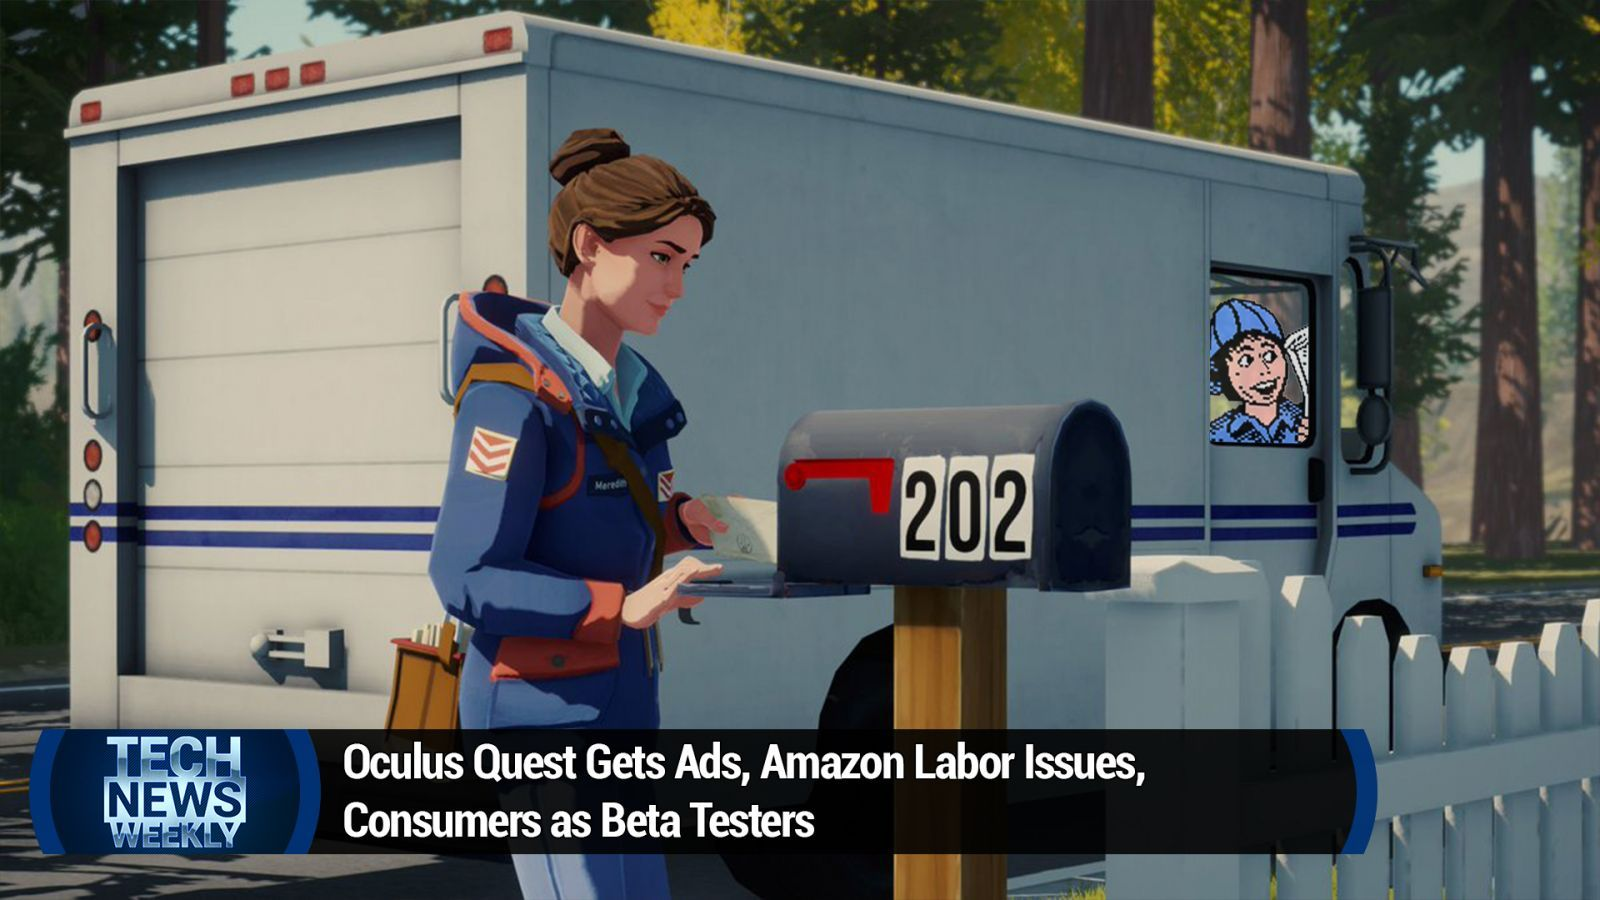 Oculus Quest Gets Ads, Amazon Labor Issues, Consumers as Beta Testers